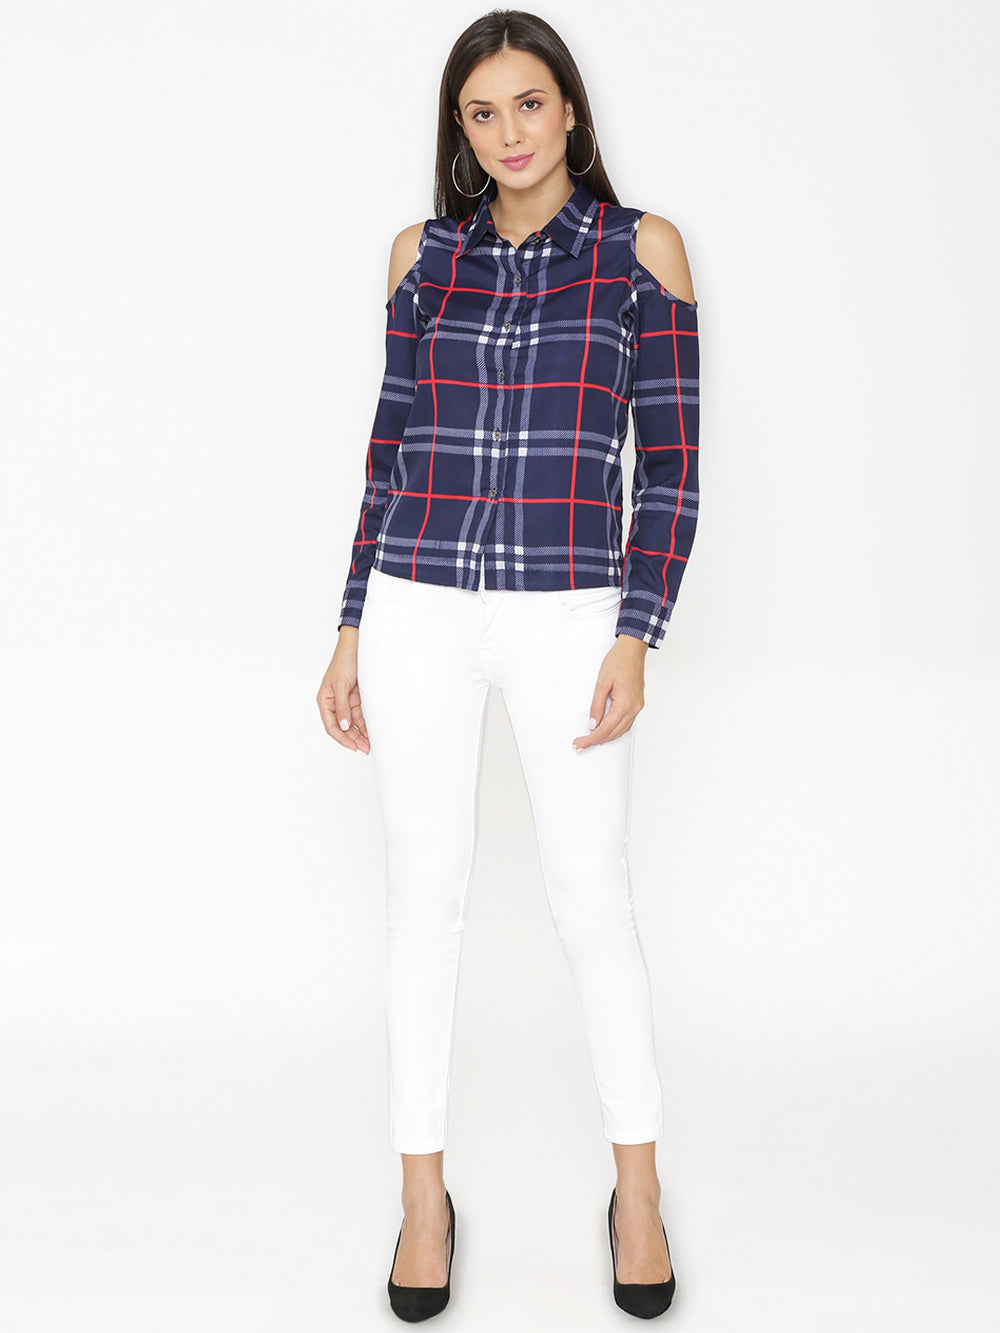 eyelet Women Blue Regular Fit Checked Casual Shirt